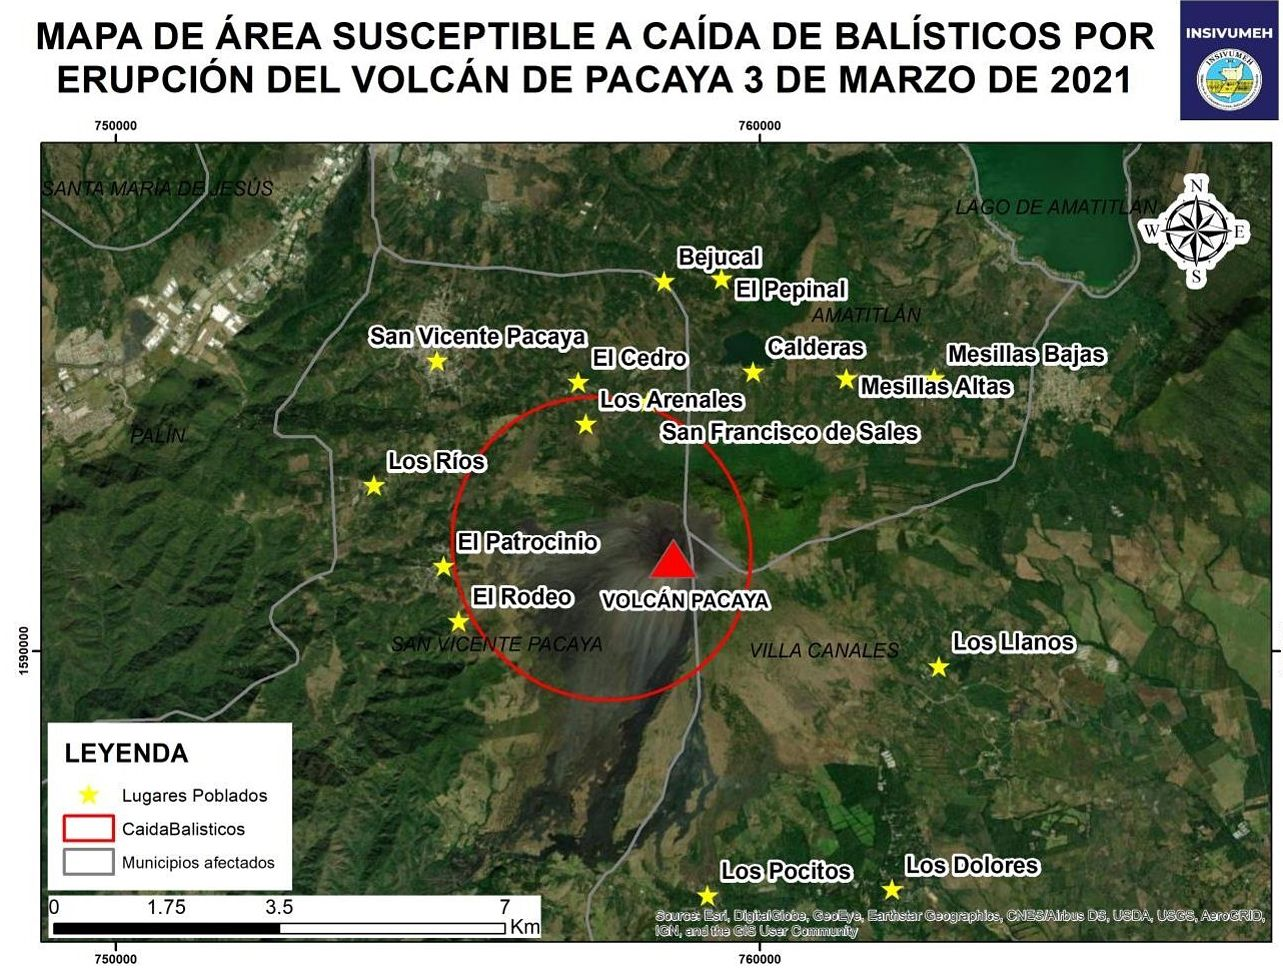 Pacaya - map of possible ballistic fallout as of 03.03.2021 - Doc. Insivumeh